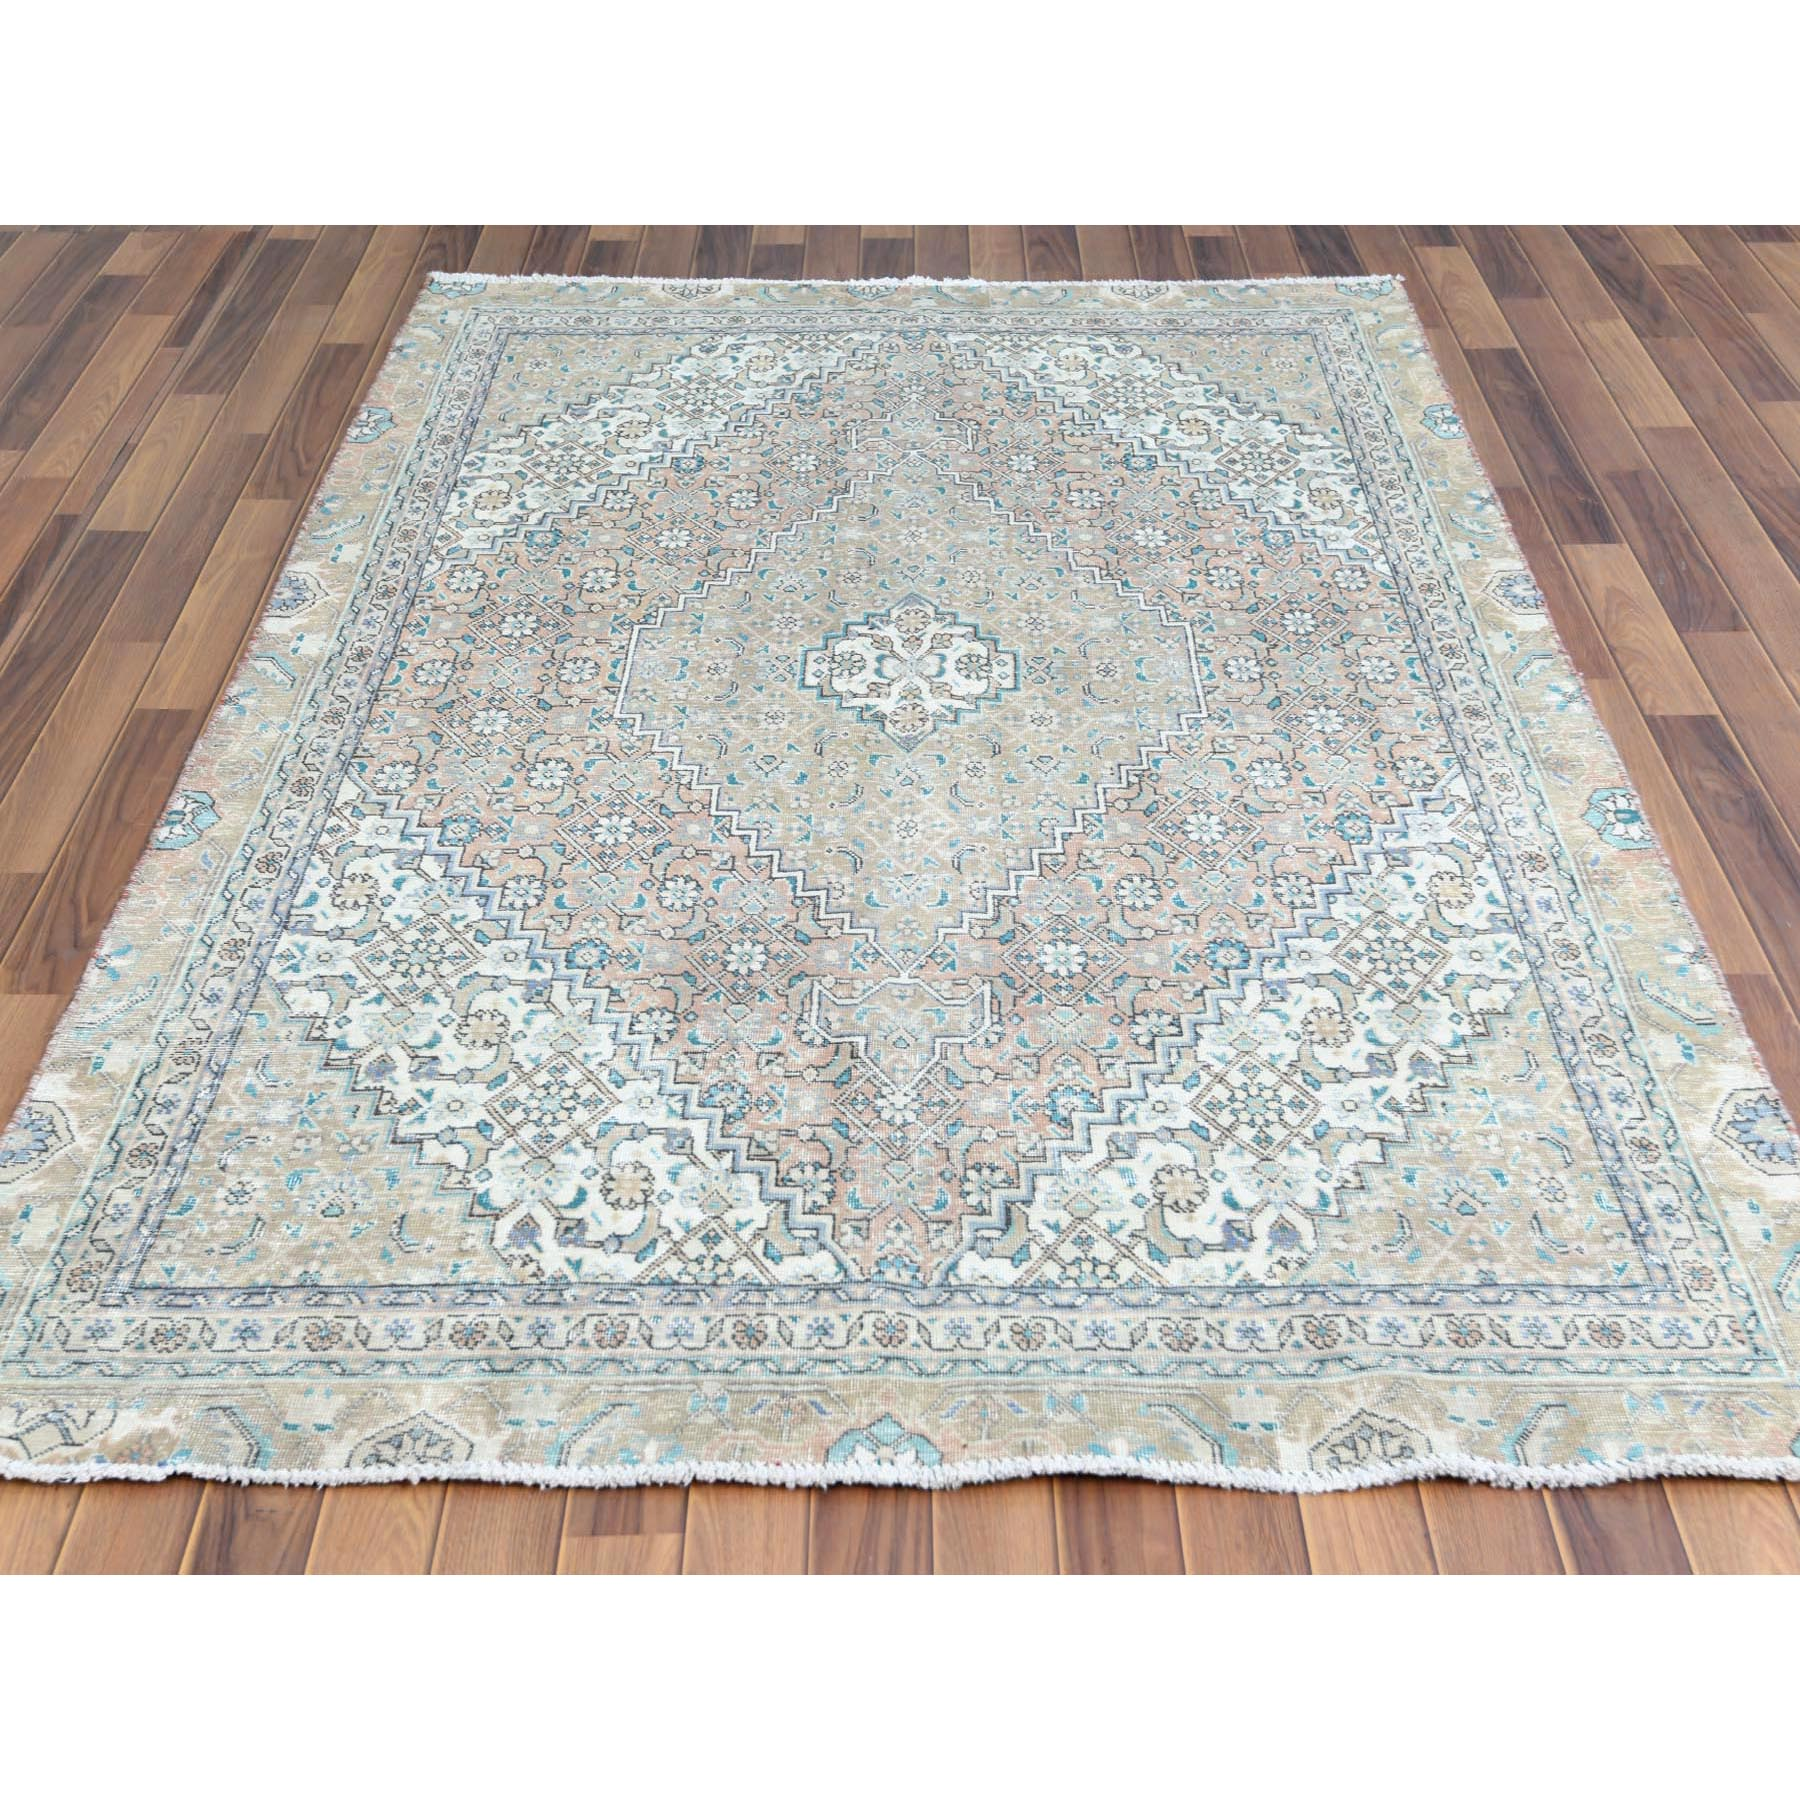 "5'3""x8' Brown Clean Pure Wool Bohemian Worn Down Vintage Look Persian Tabriz Mahi Medallion Design Hand Knotted Oriental Rug"